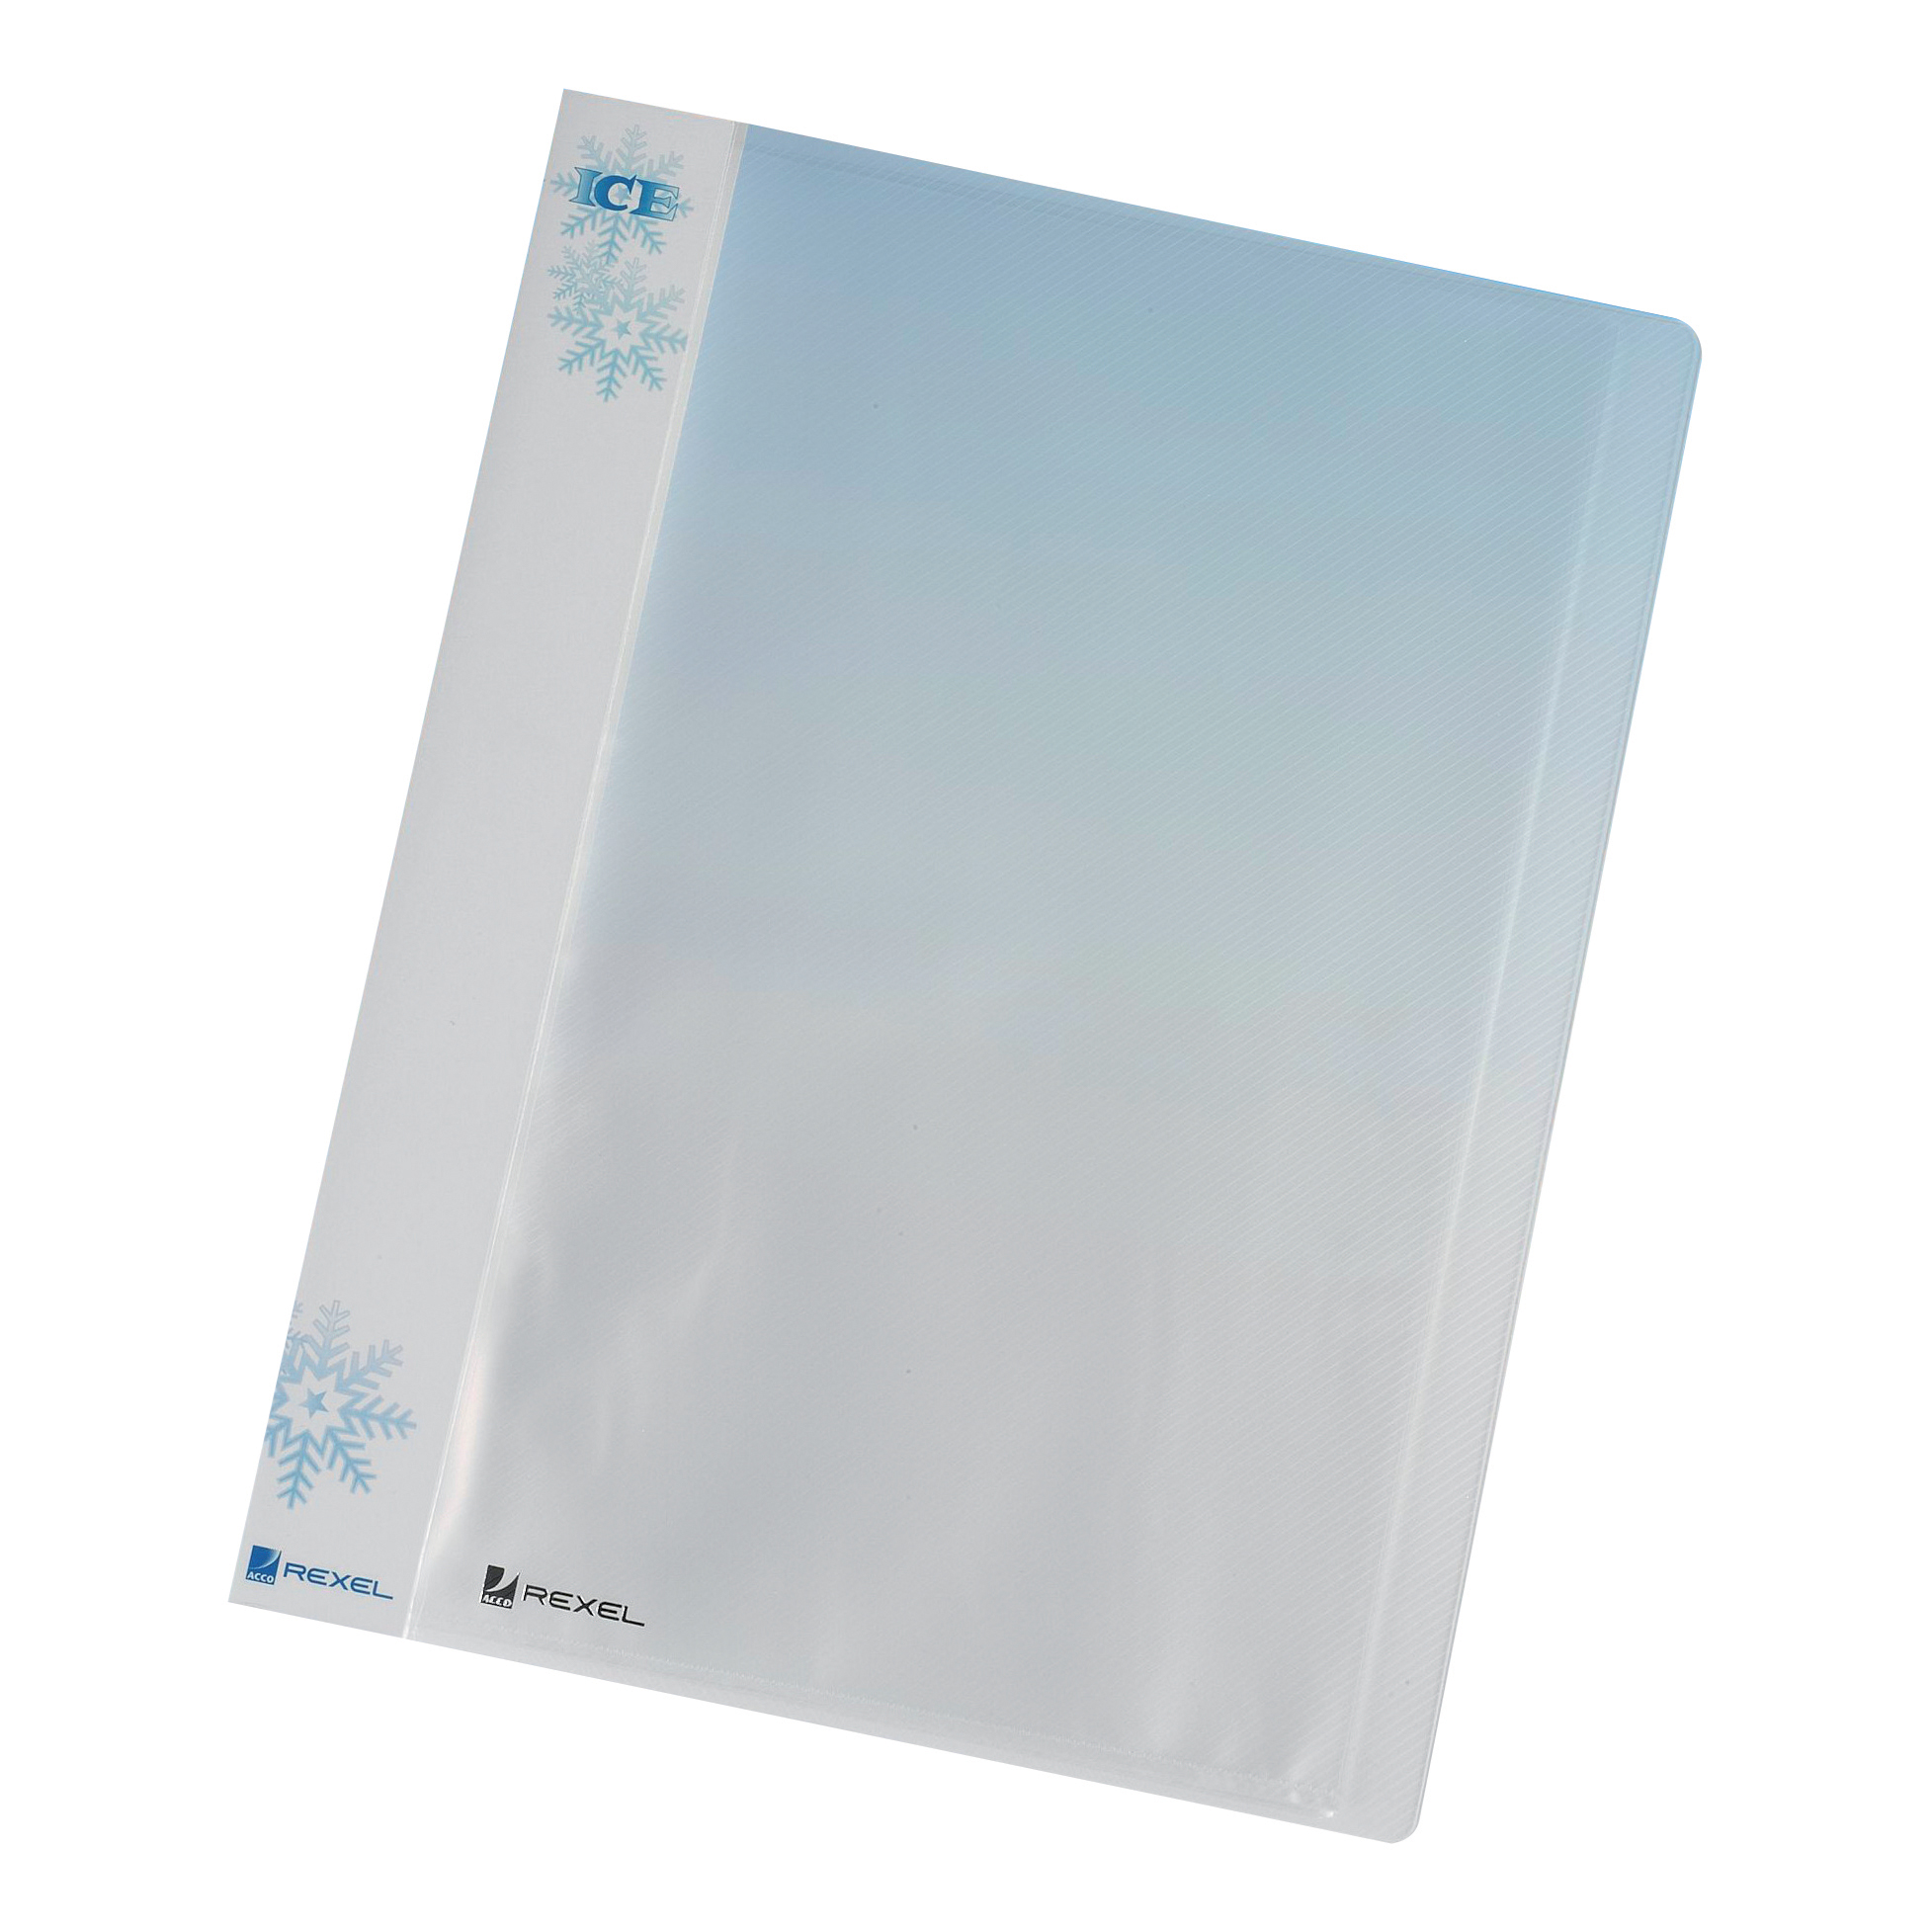 Rexel Ice Display Book Polypropylene 40 Pockets A4 Clear Ref 2102041 Pack 10